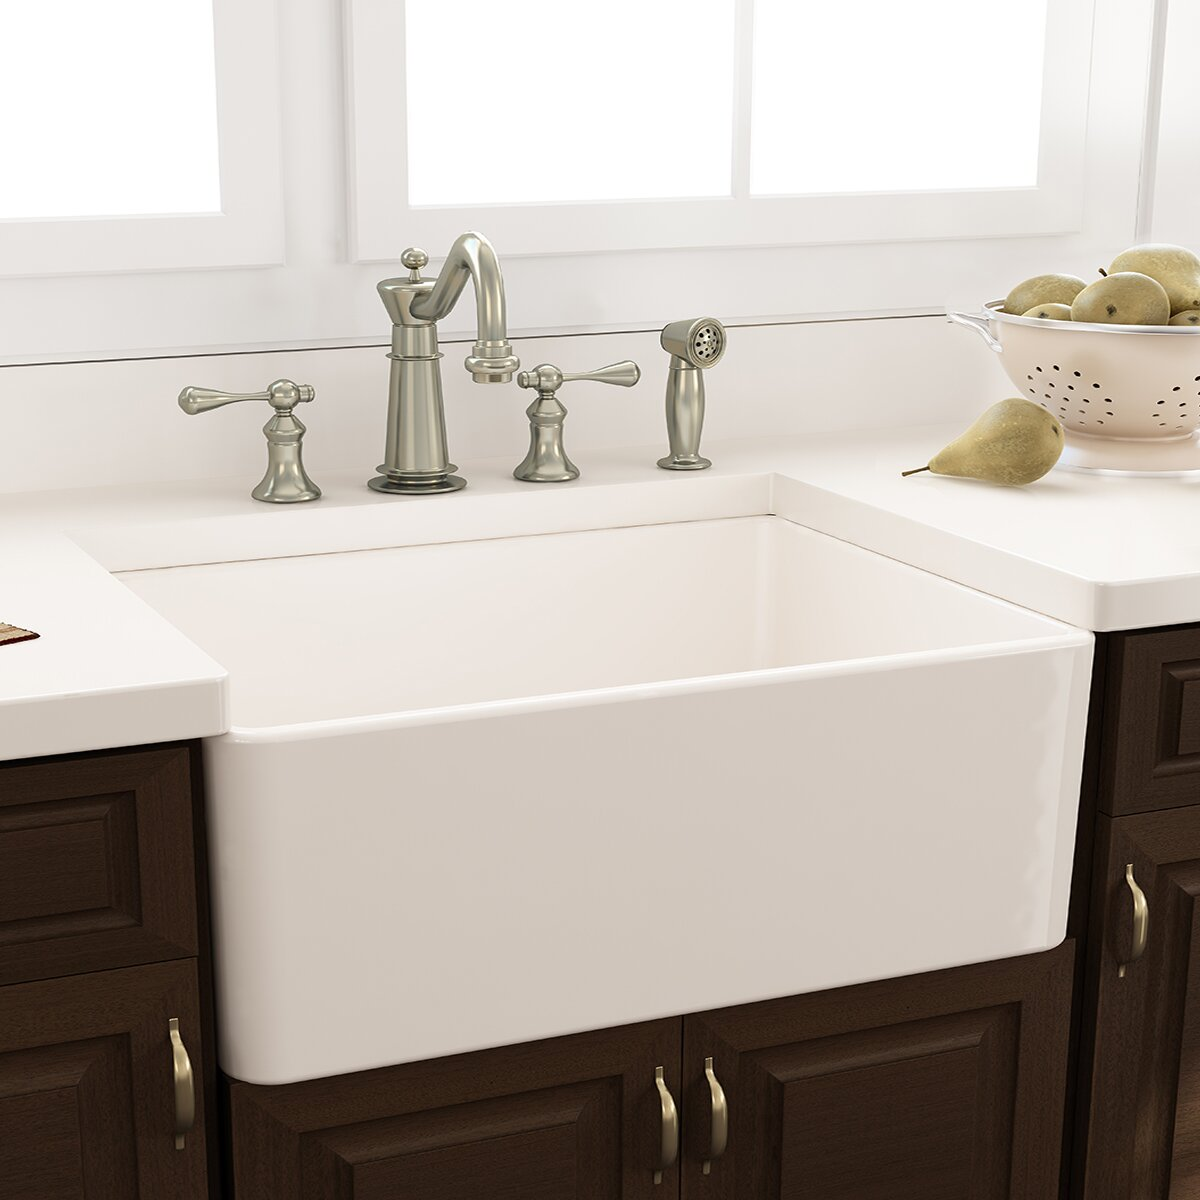 Nantucket Sinks Cape 3025 x 18 Kitchen Sink with Grid and Drain